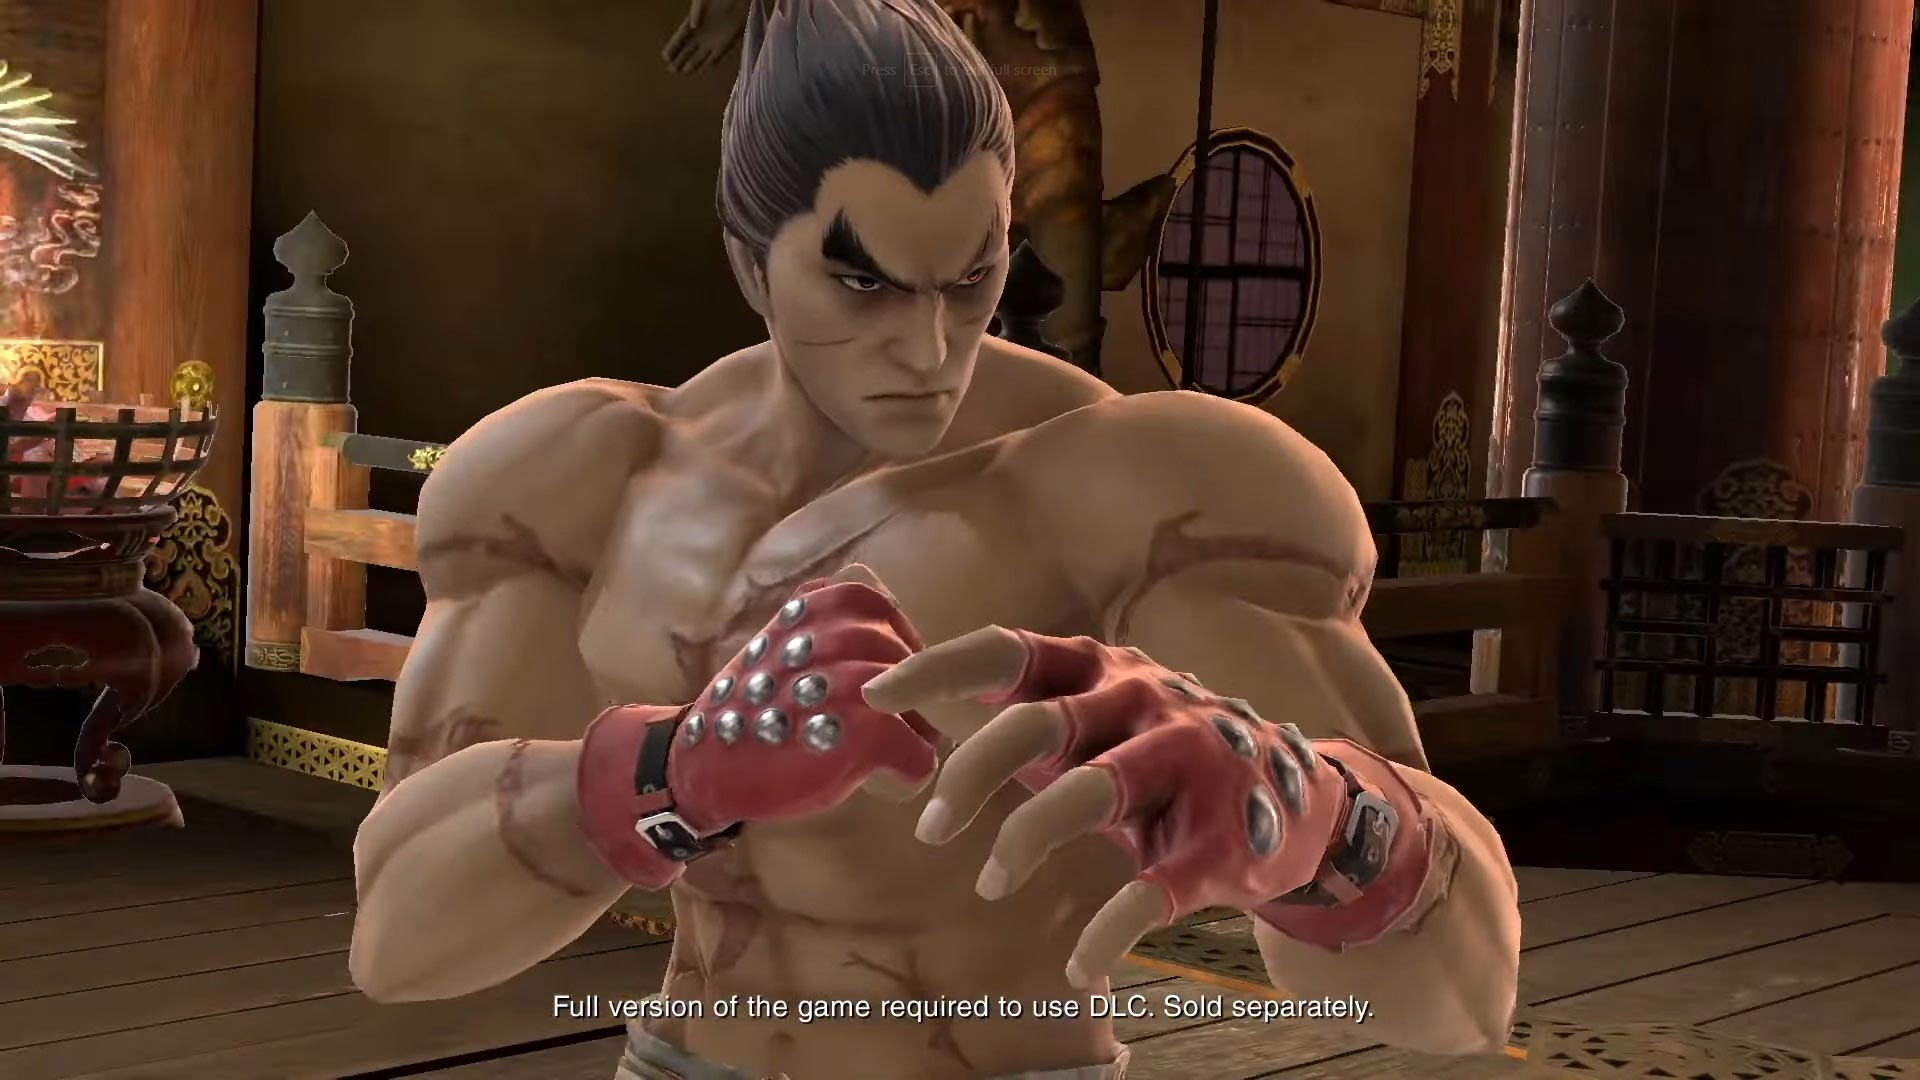 Kazuya in Super Smash Bros. Ultimate 2 out of 6 image gallery